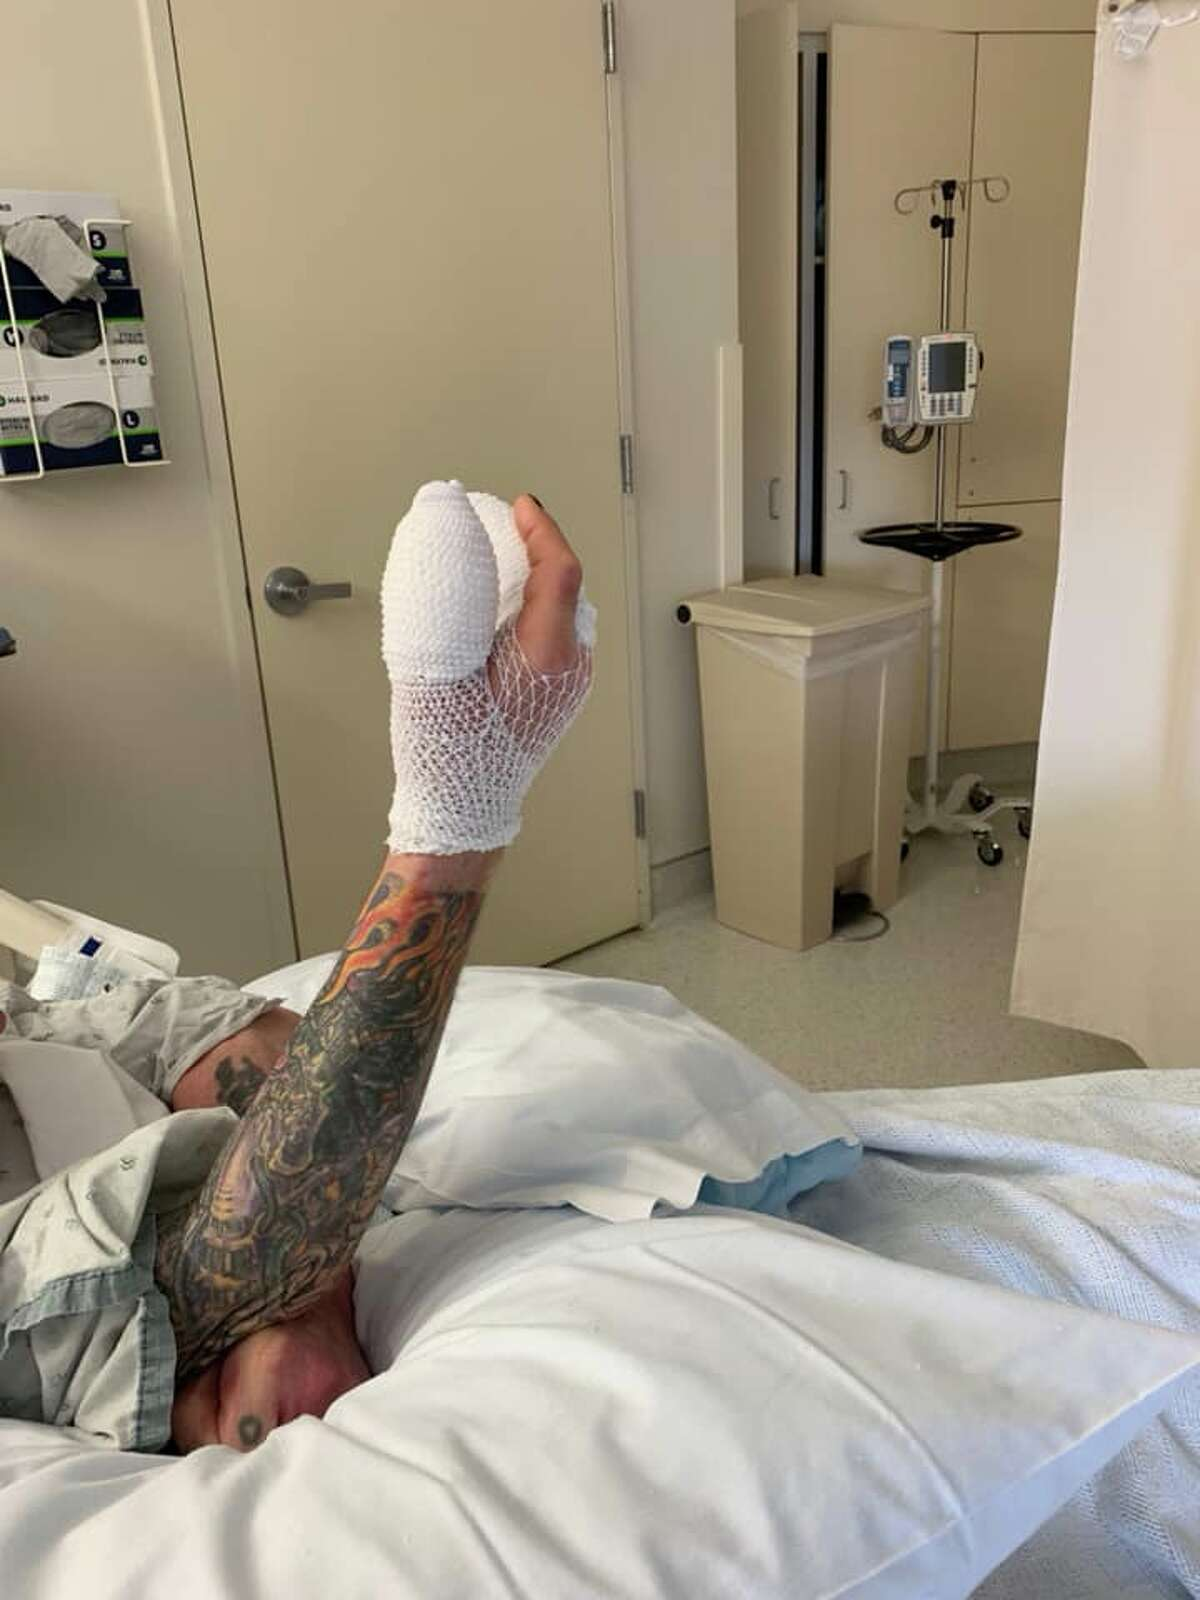 Ozzy Osbourne was hospitalized after an infection led him to need hand surgery Saturday morning, he said in a statement. Click through the gallery to read about the origin stories of iconic Bay Area rock bands.